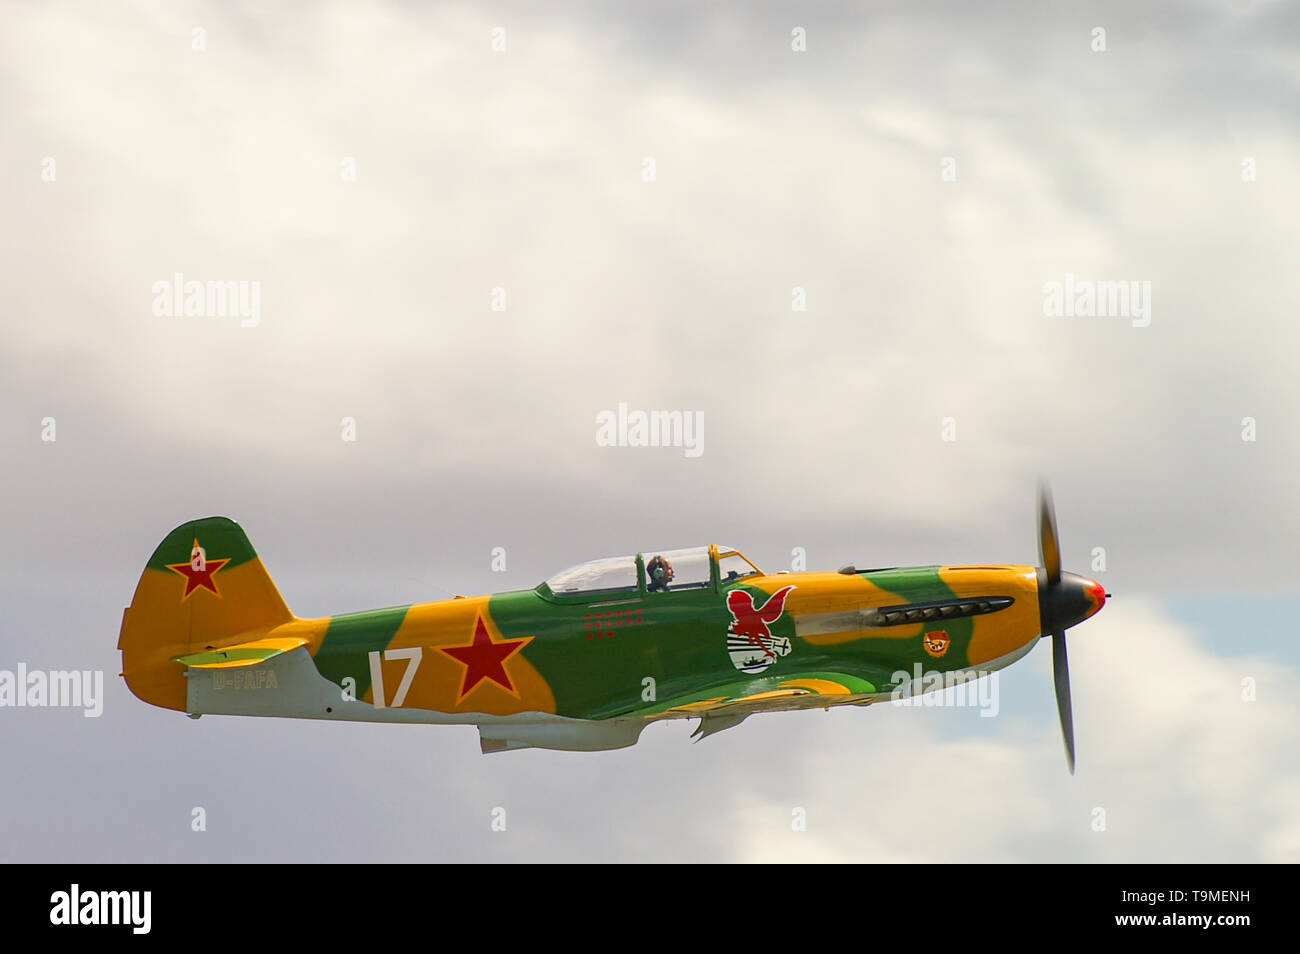 yakovlev-yak-9-d-fafa-owned-by-tempelhof-multipurpose-fighter-aircraft-used-by-the-soviet-union-in-world-war-ii-second-world-war-russian-plane-T9MENH.jpg